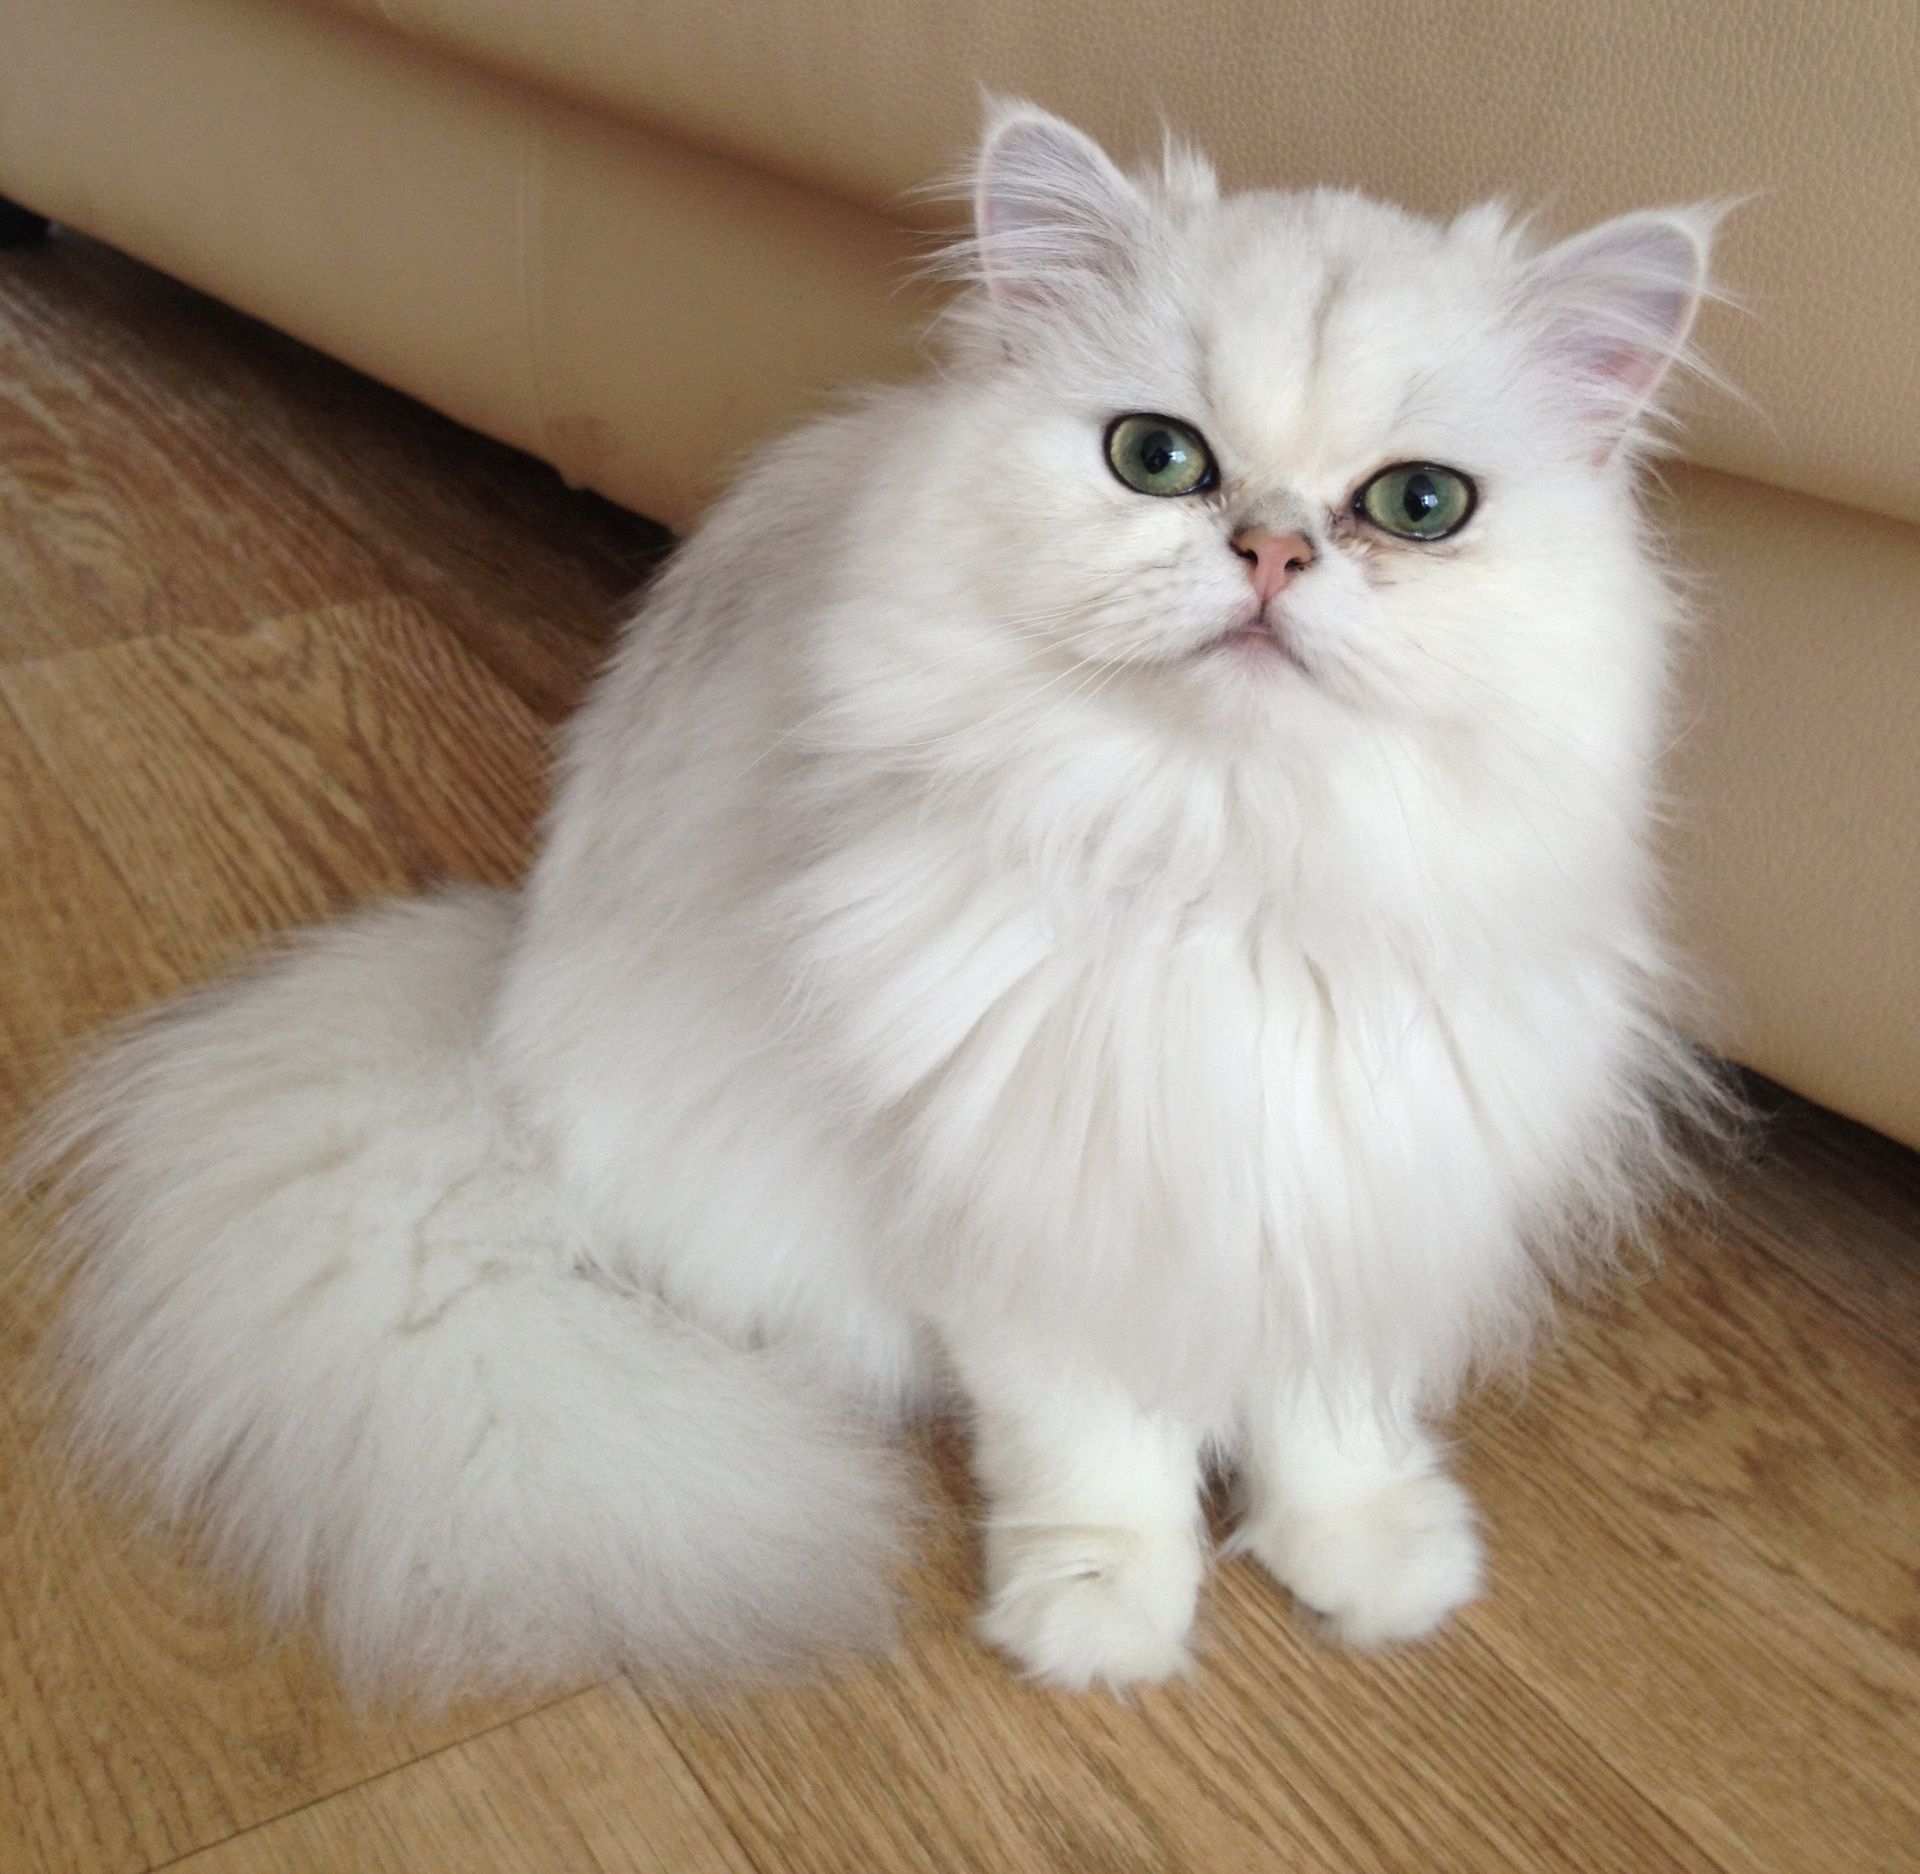 Chinchilla longhair This is the most elegant Persian cat Just